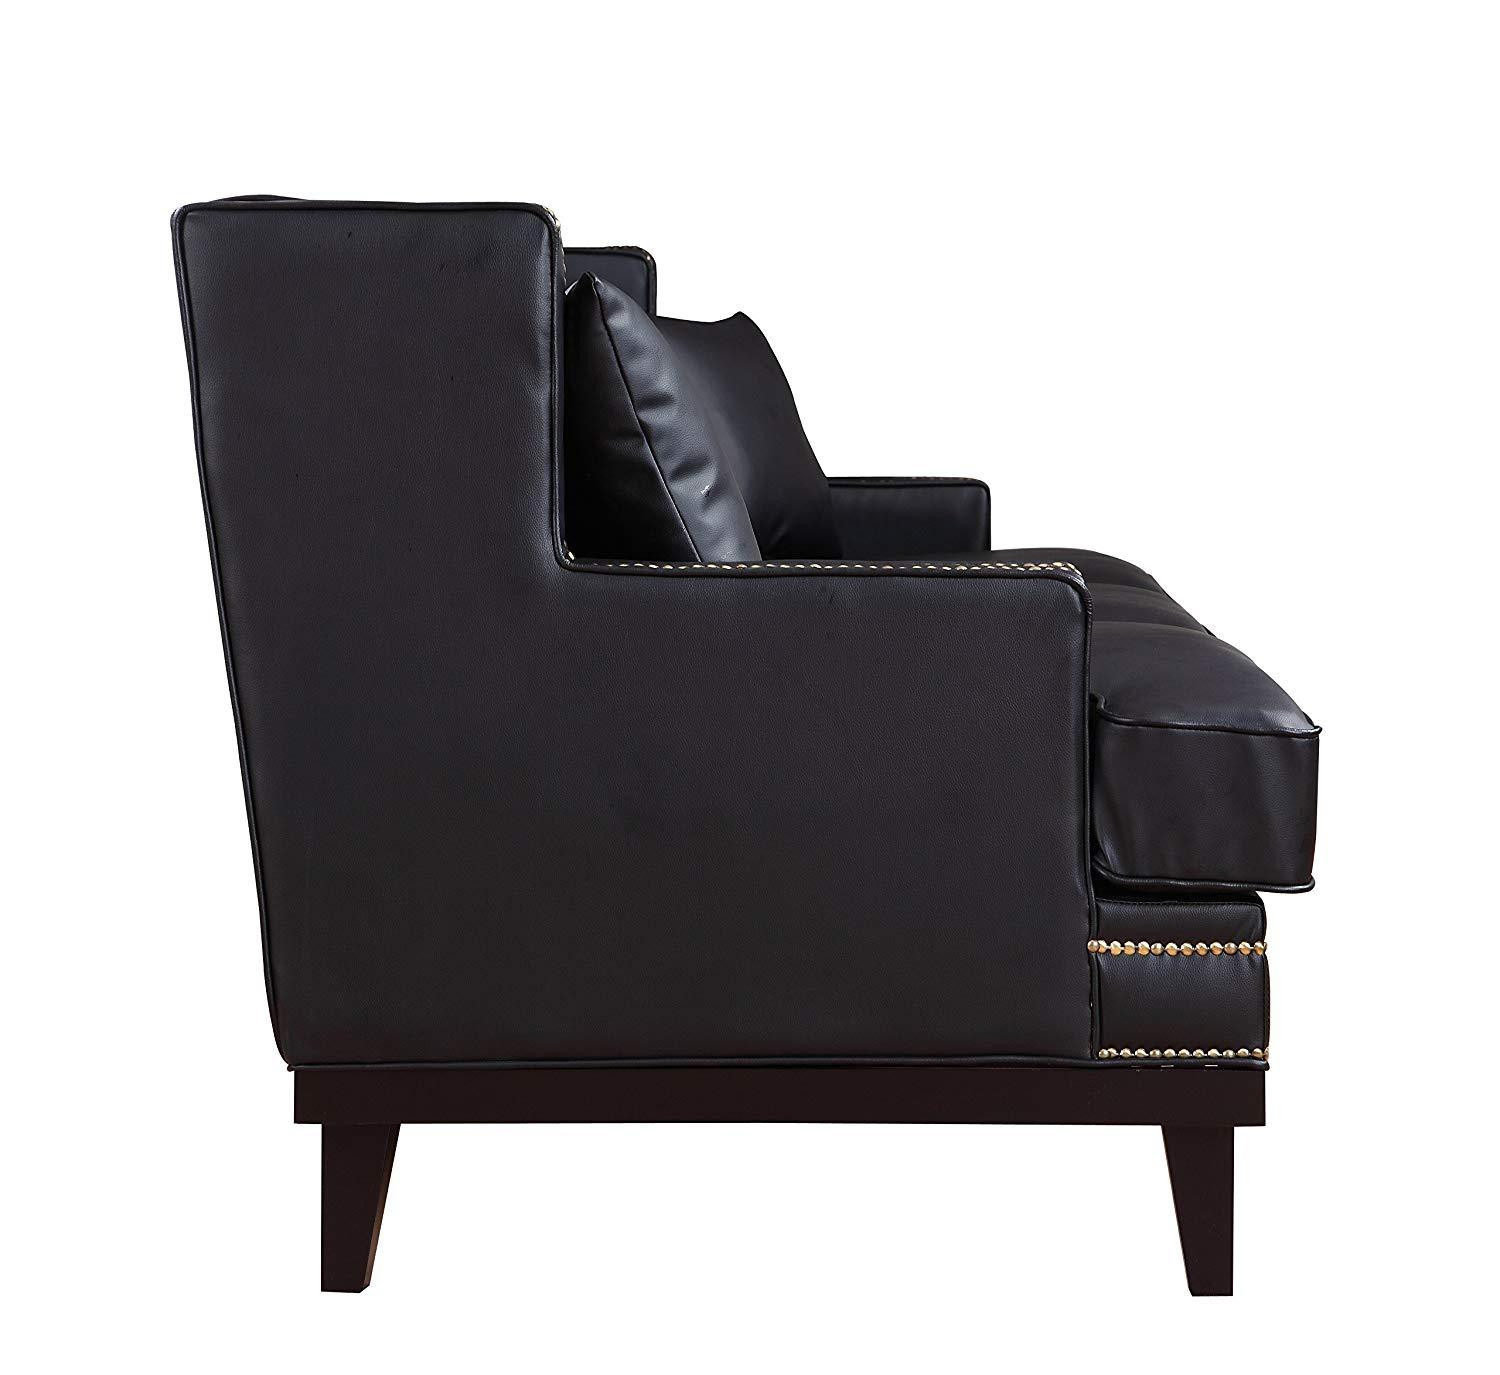 New Century® Black Modern Faux Leather Sofa With Nailhead Trim